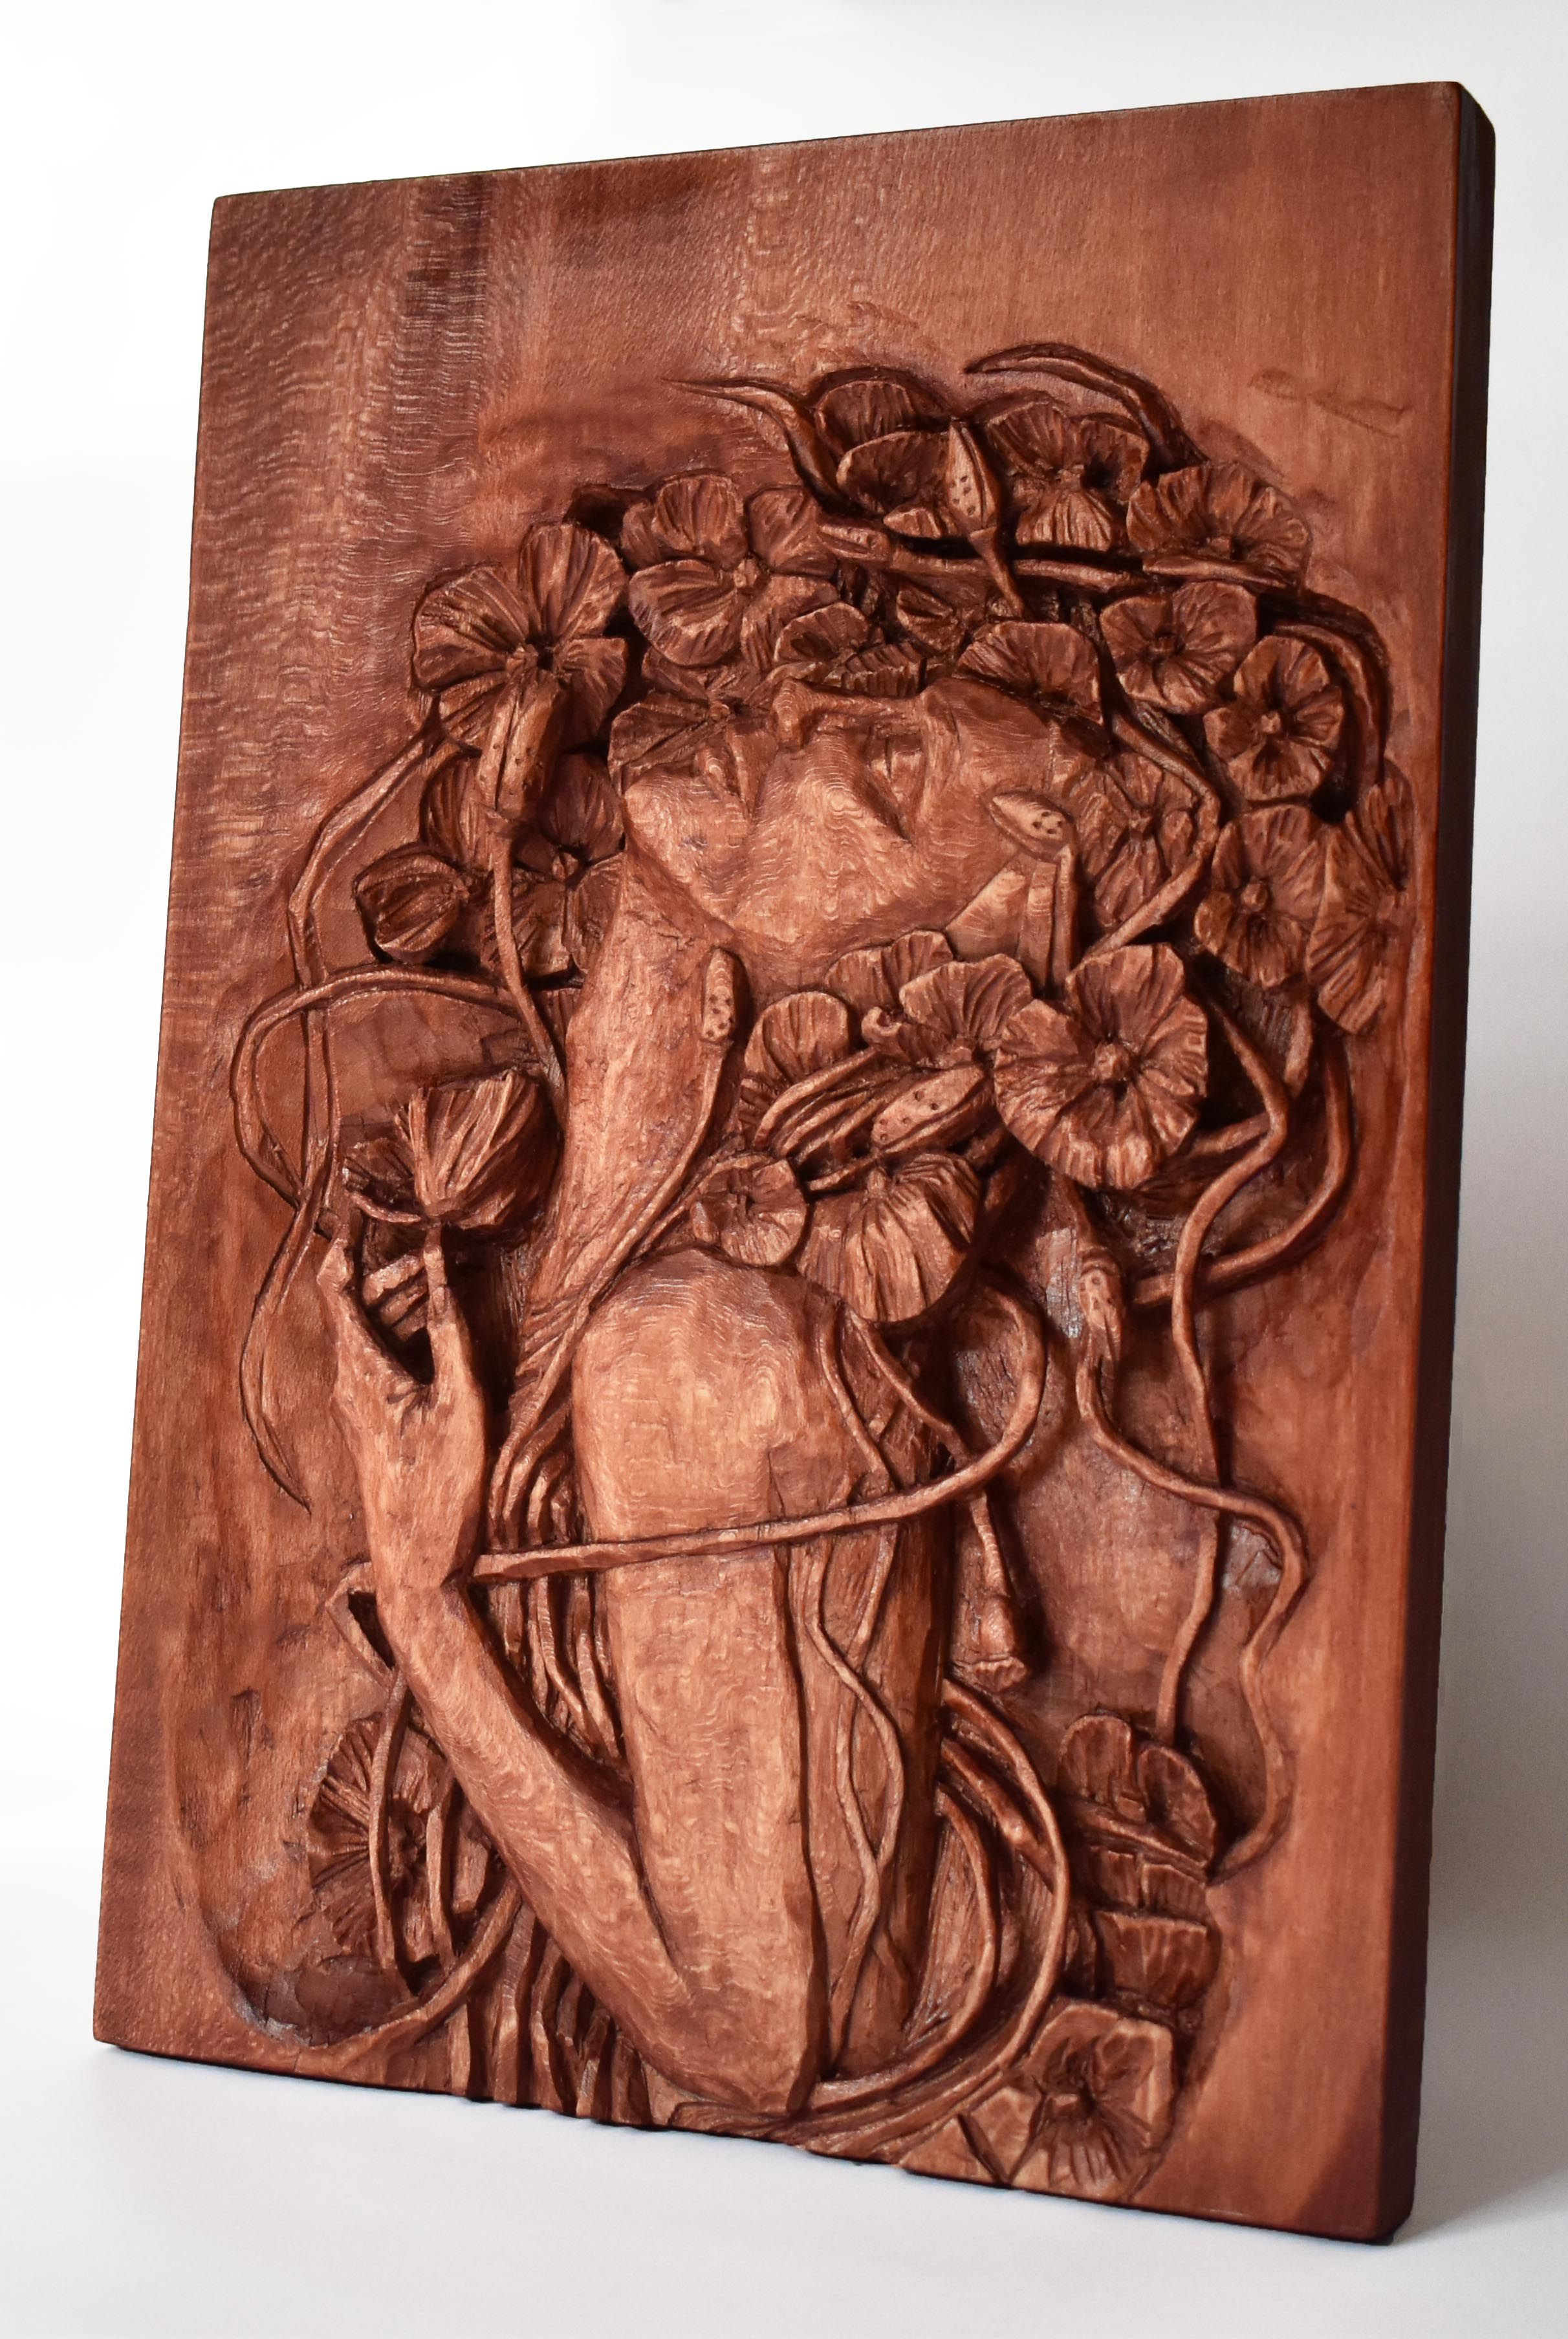 Nixie wood relief handmade carving basswood sculpture mahogany wine